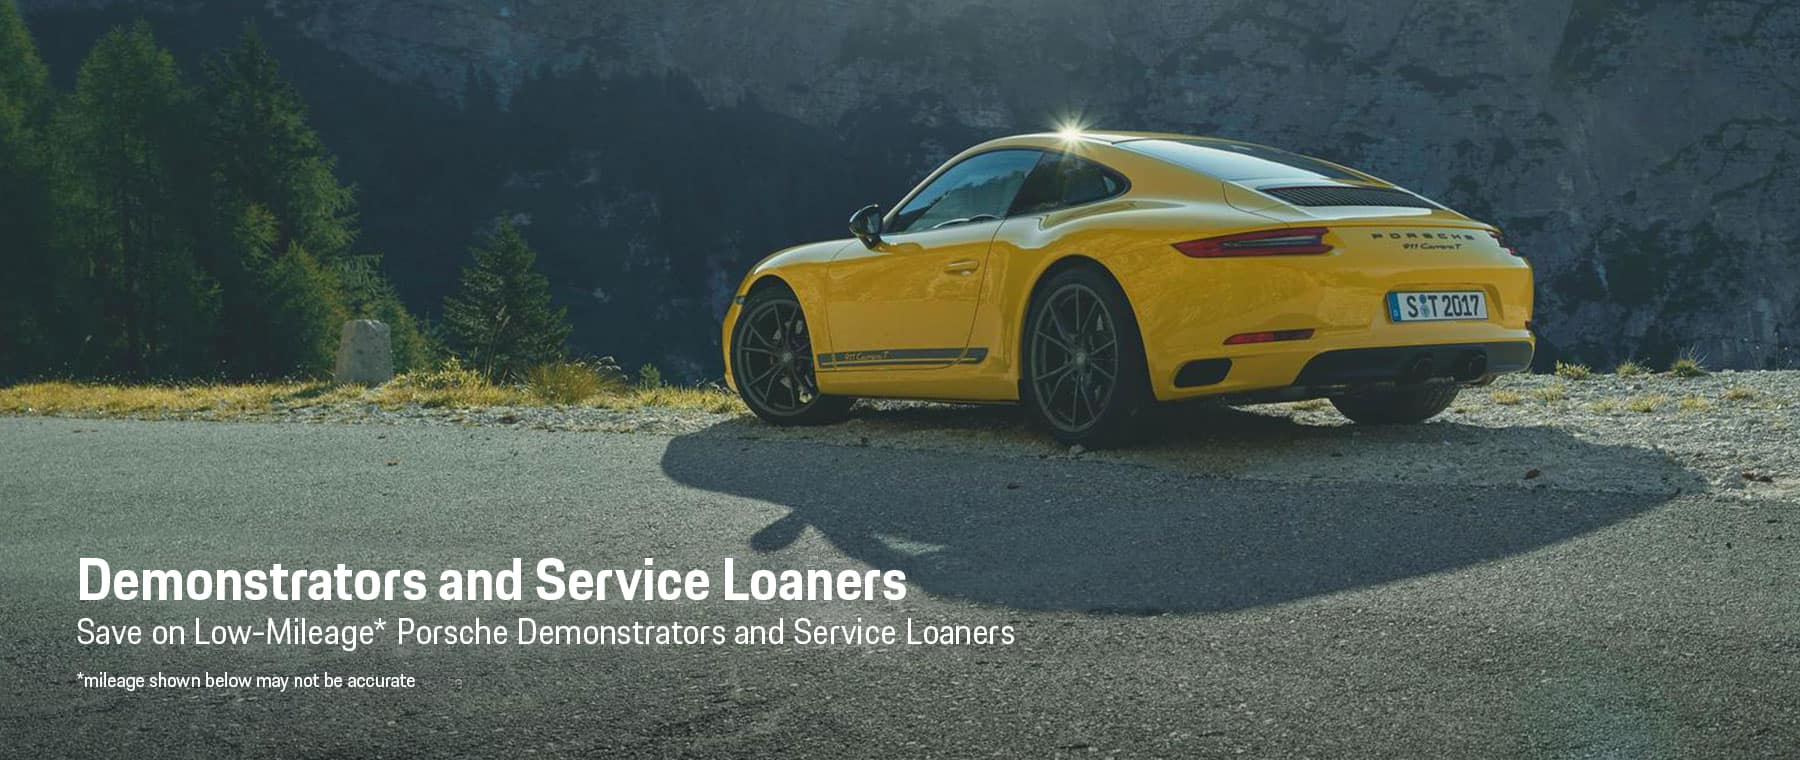 Sewickley Porsche New Used Porsche Luxury Car Dealer In